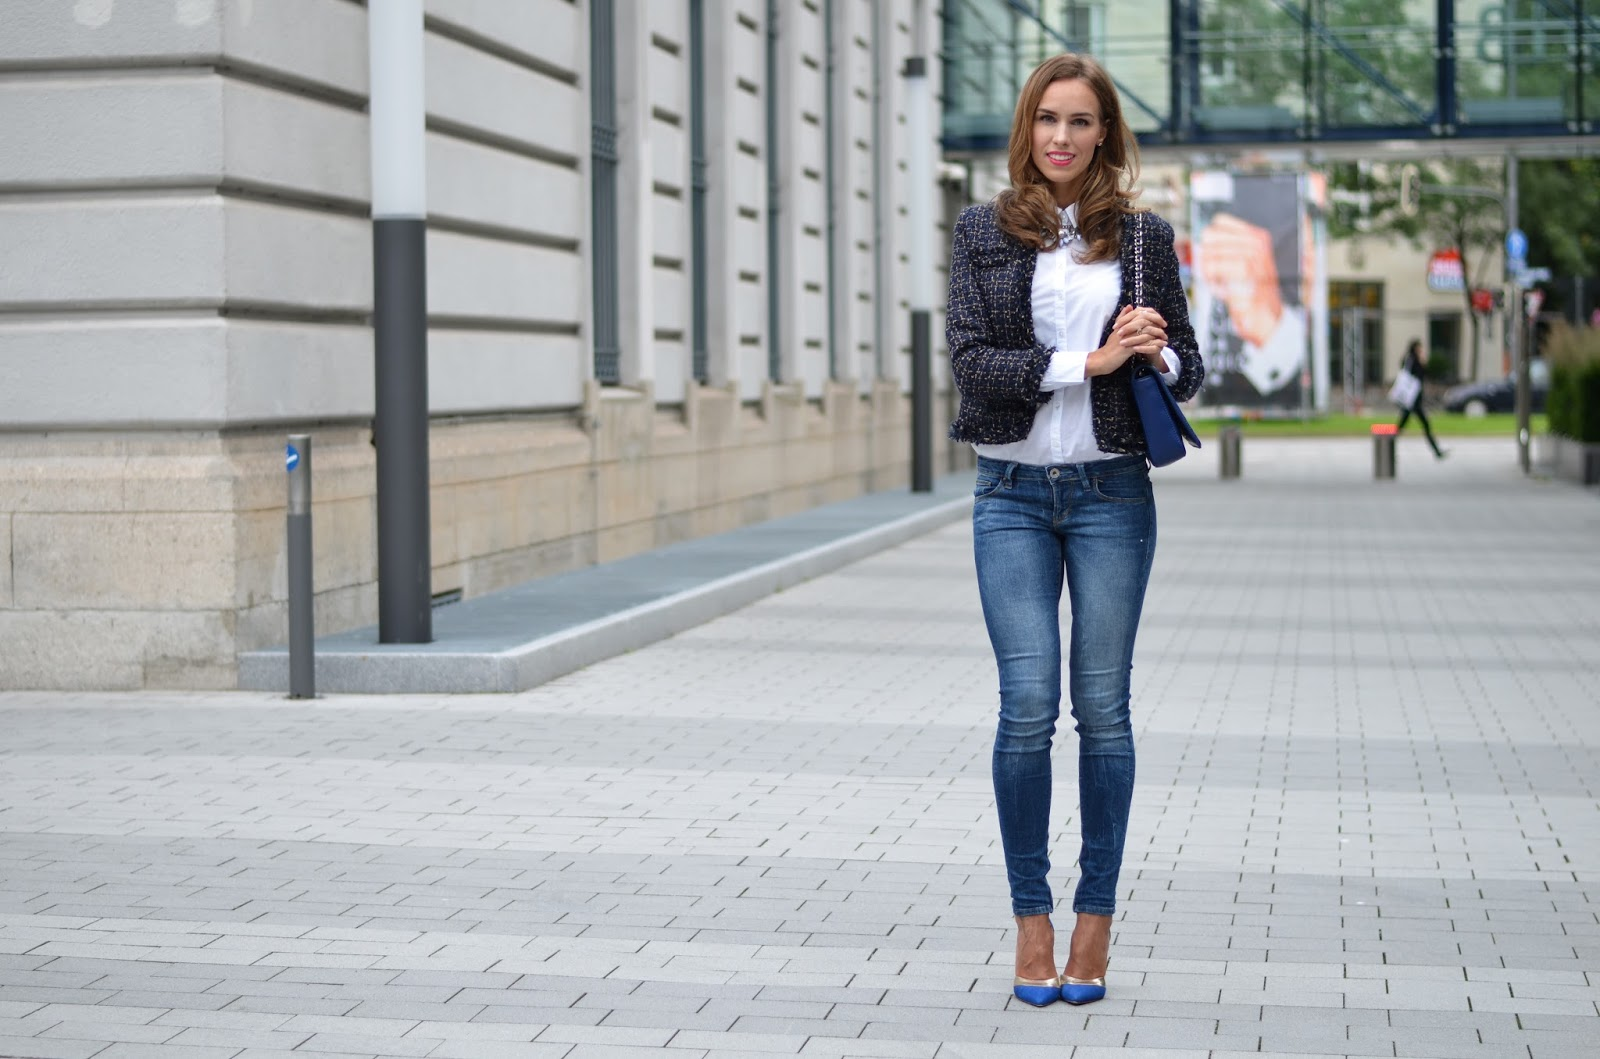 kristjaana mere munich street style fashion blogger luxury